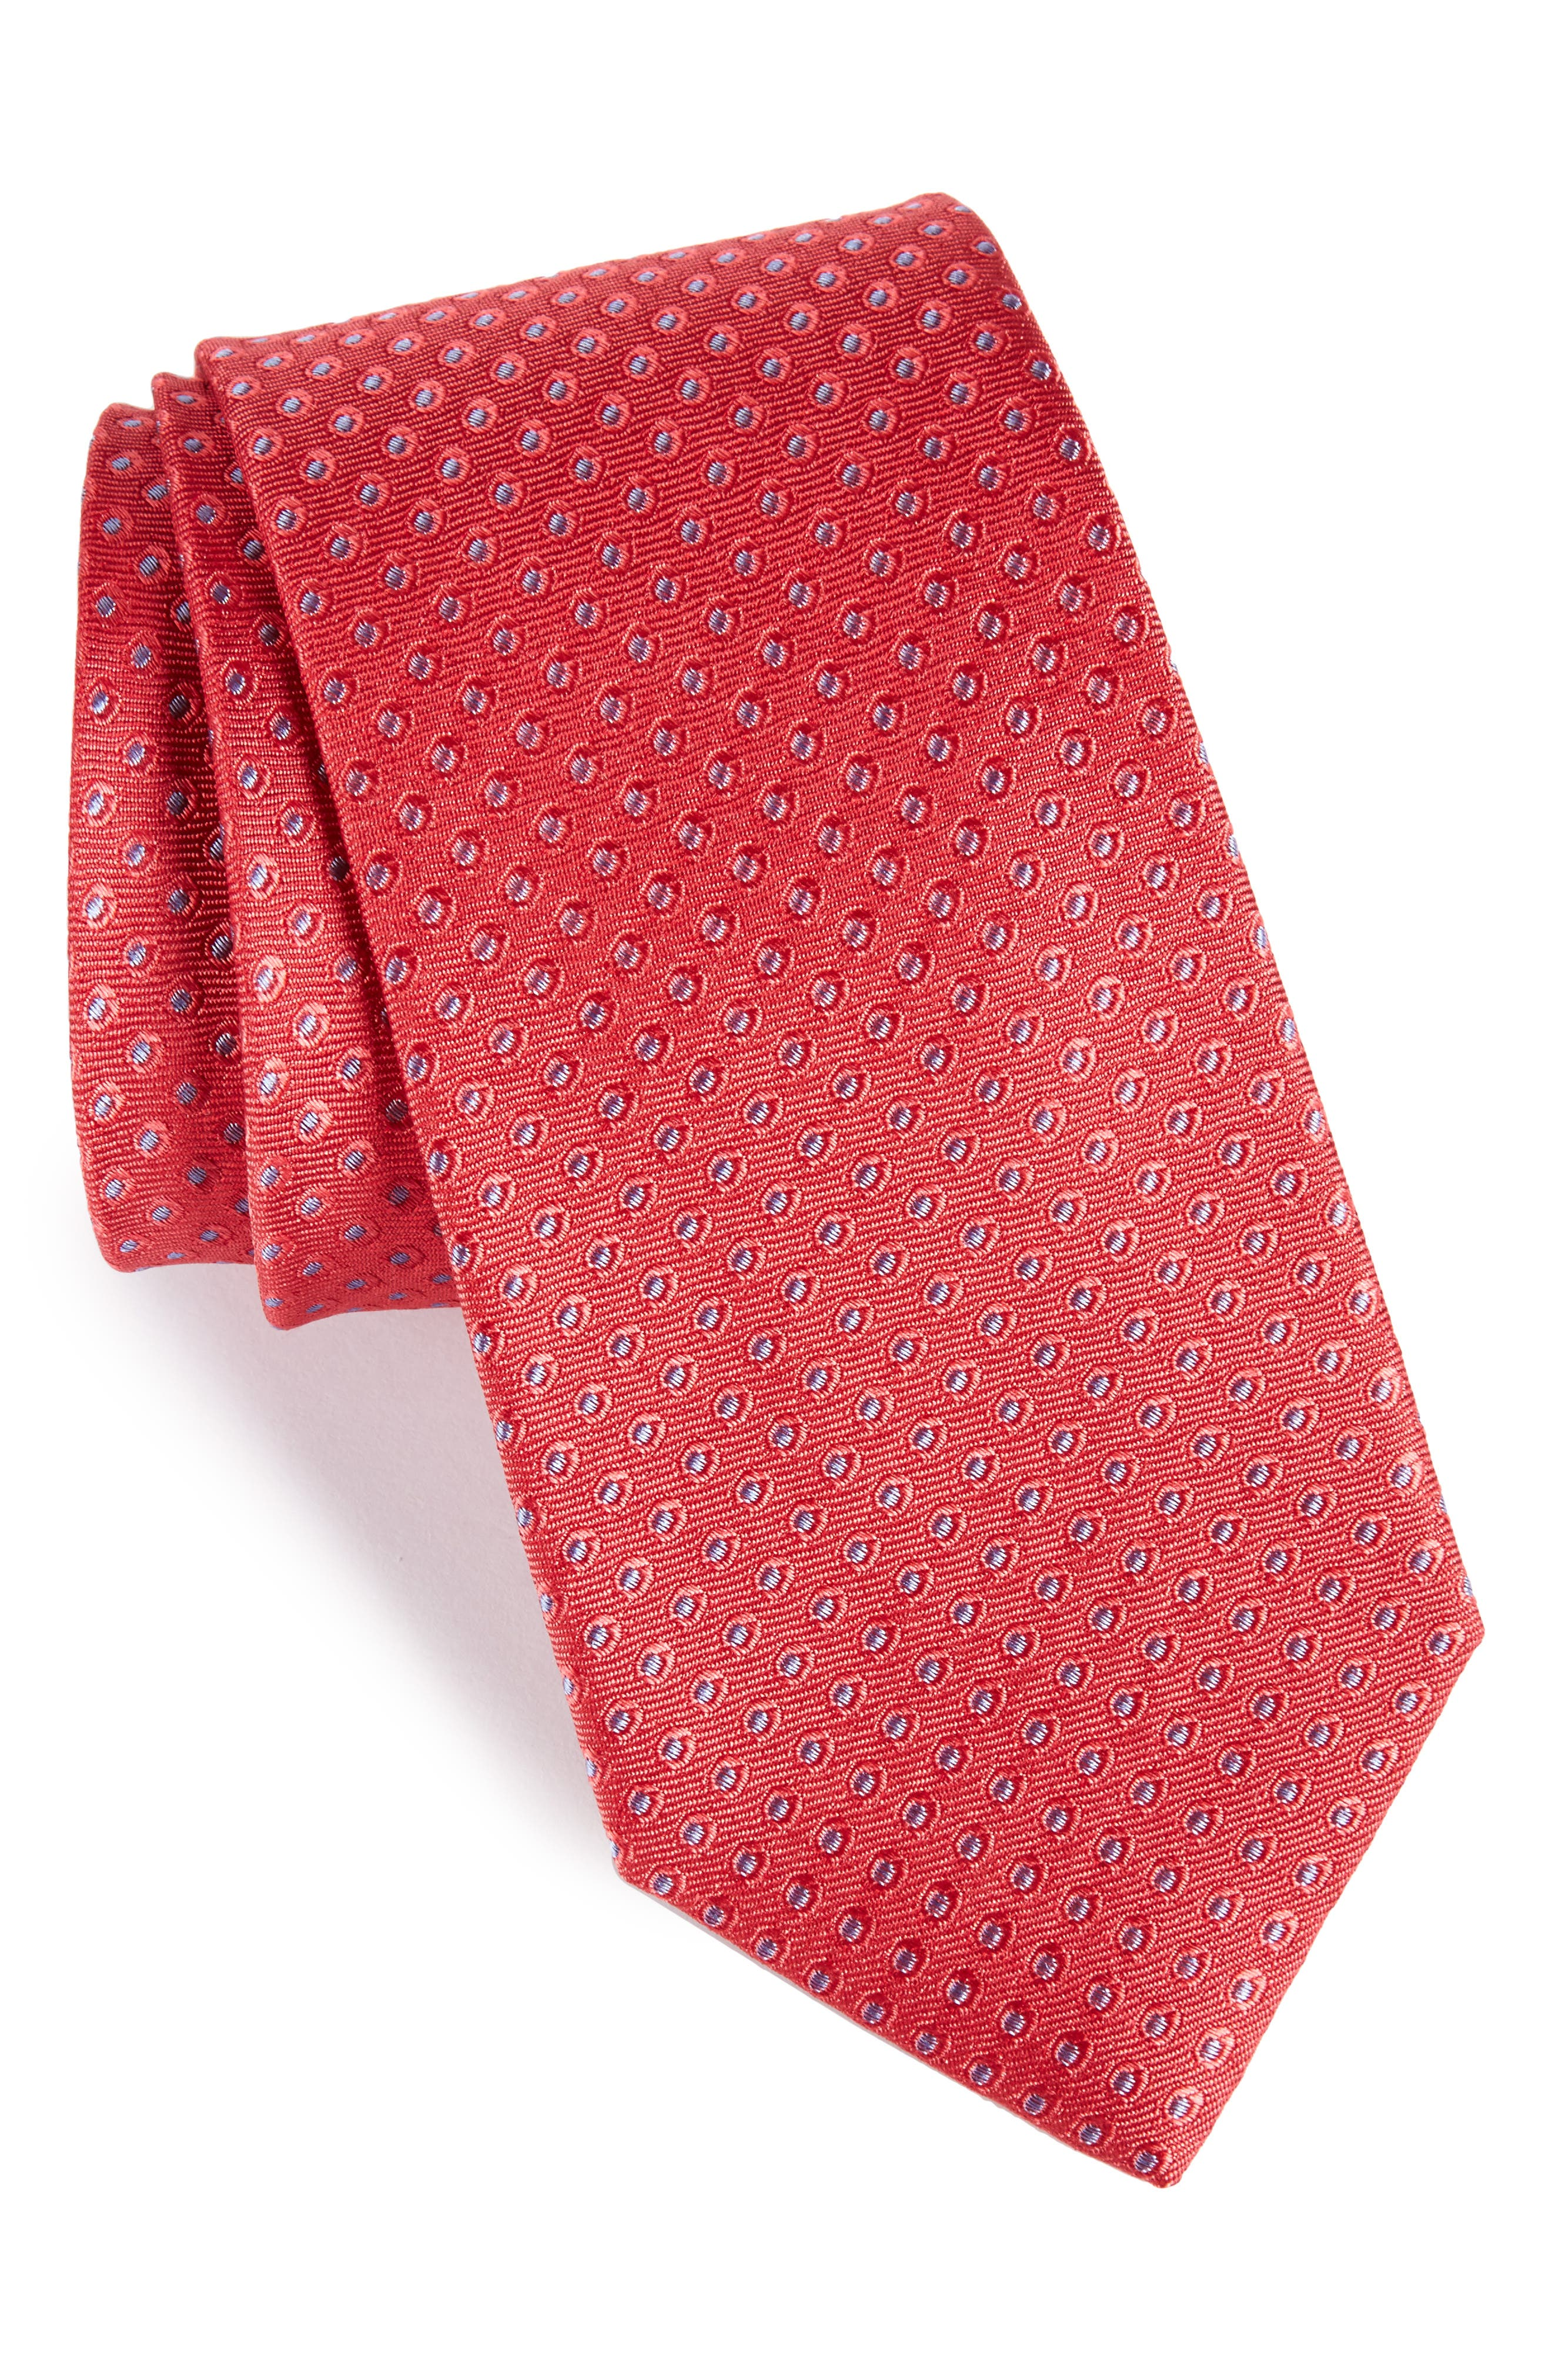 Oxford Dot Silk Tie,                         Main,                         color, Red